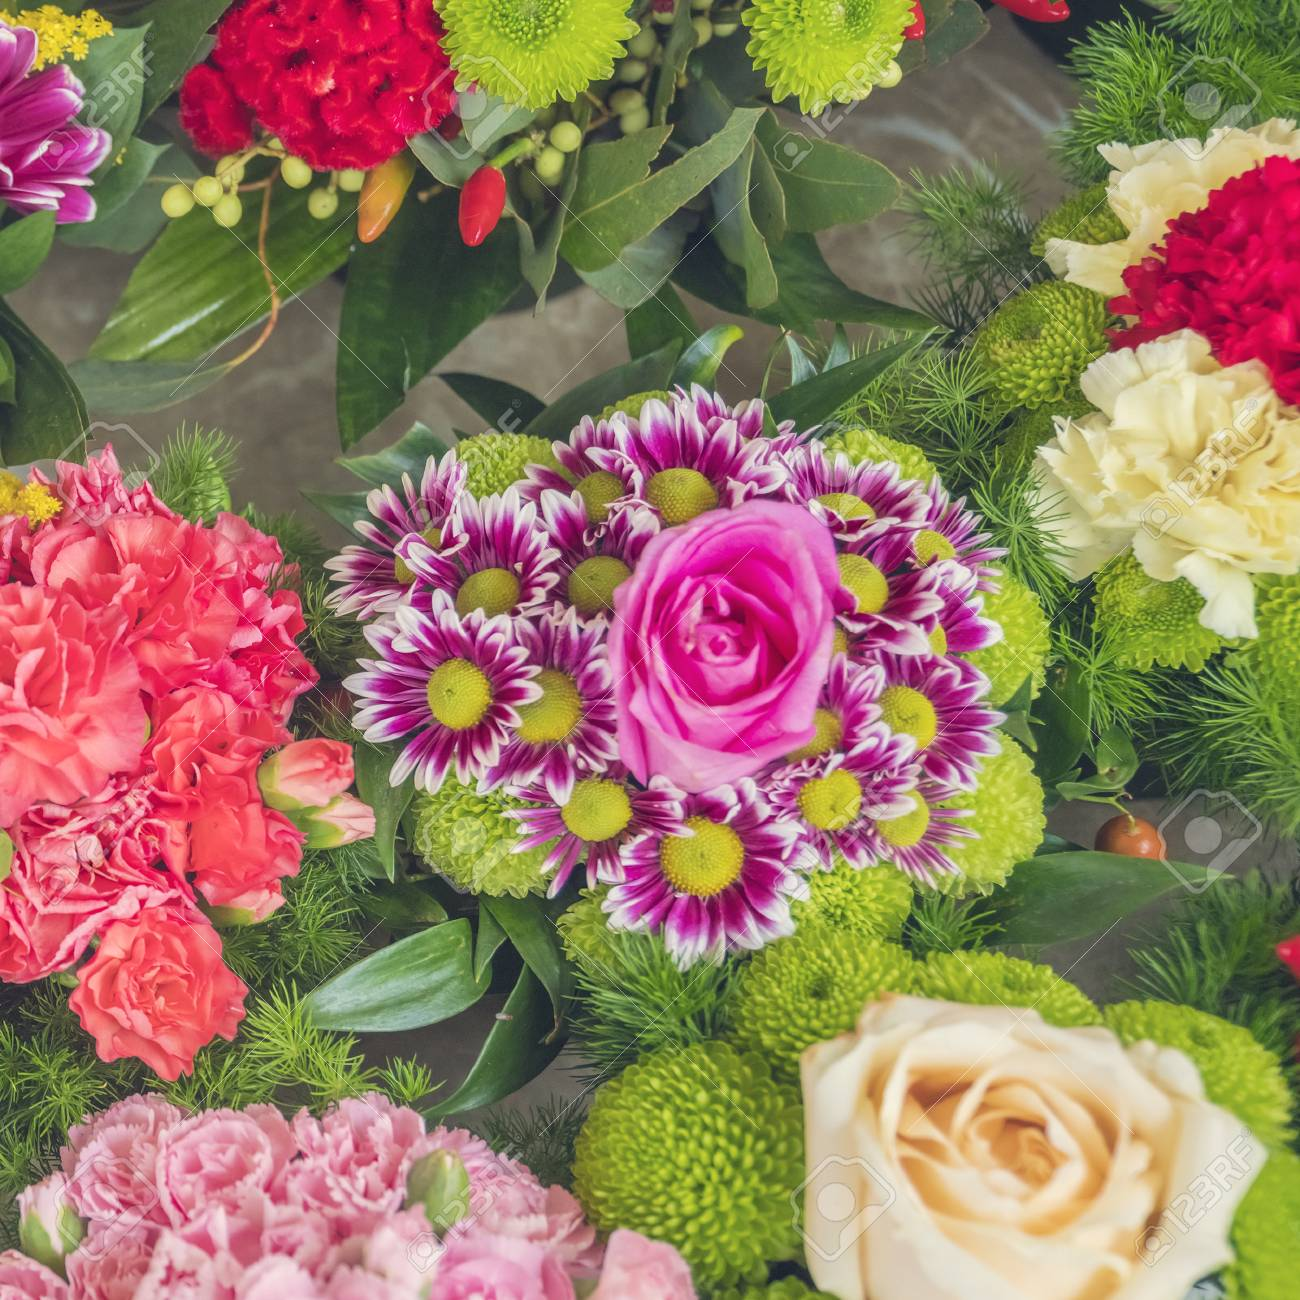 Colorful bouquets of different flowers flower shop stock photo colorful bouquets of different flowers flower shop stock photo 97209135 izmirmasajfo